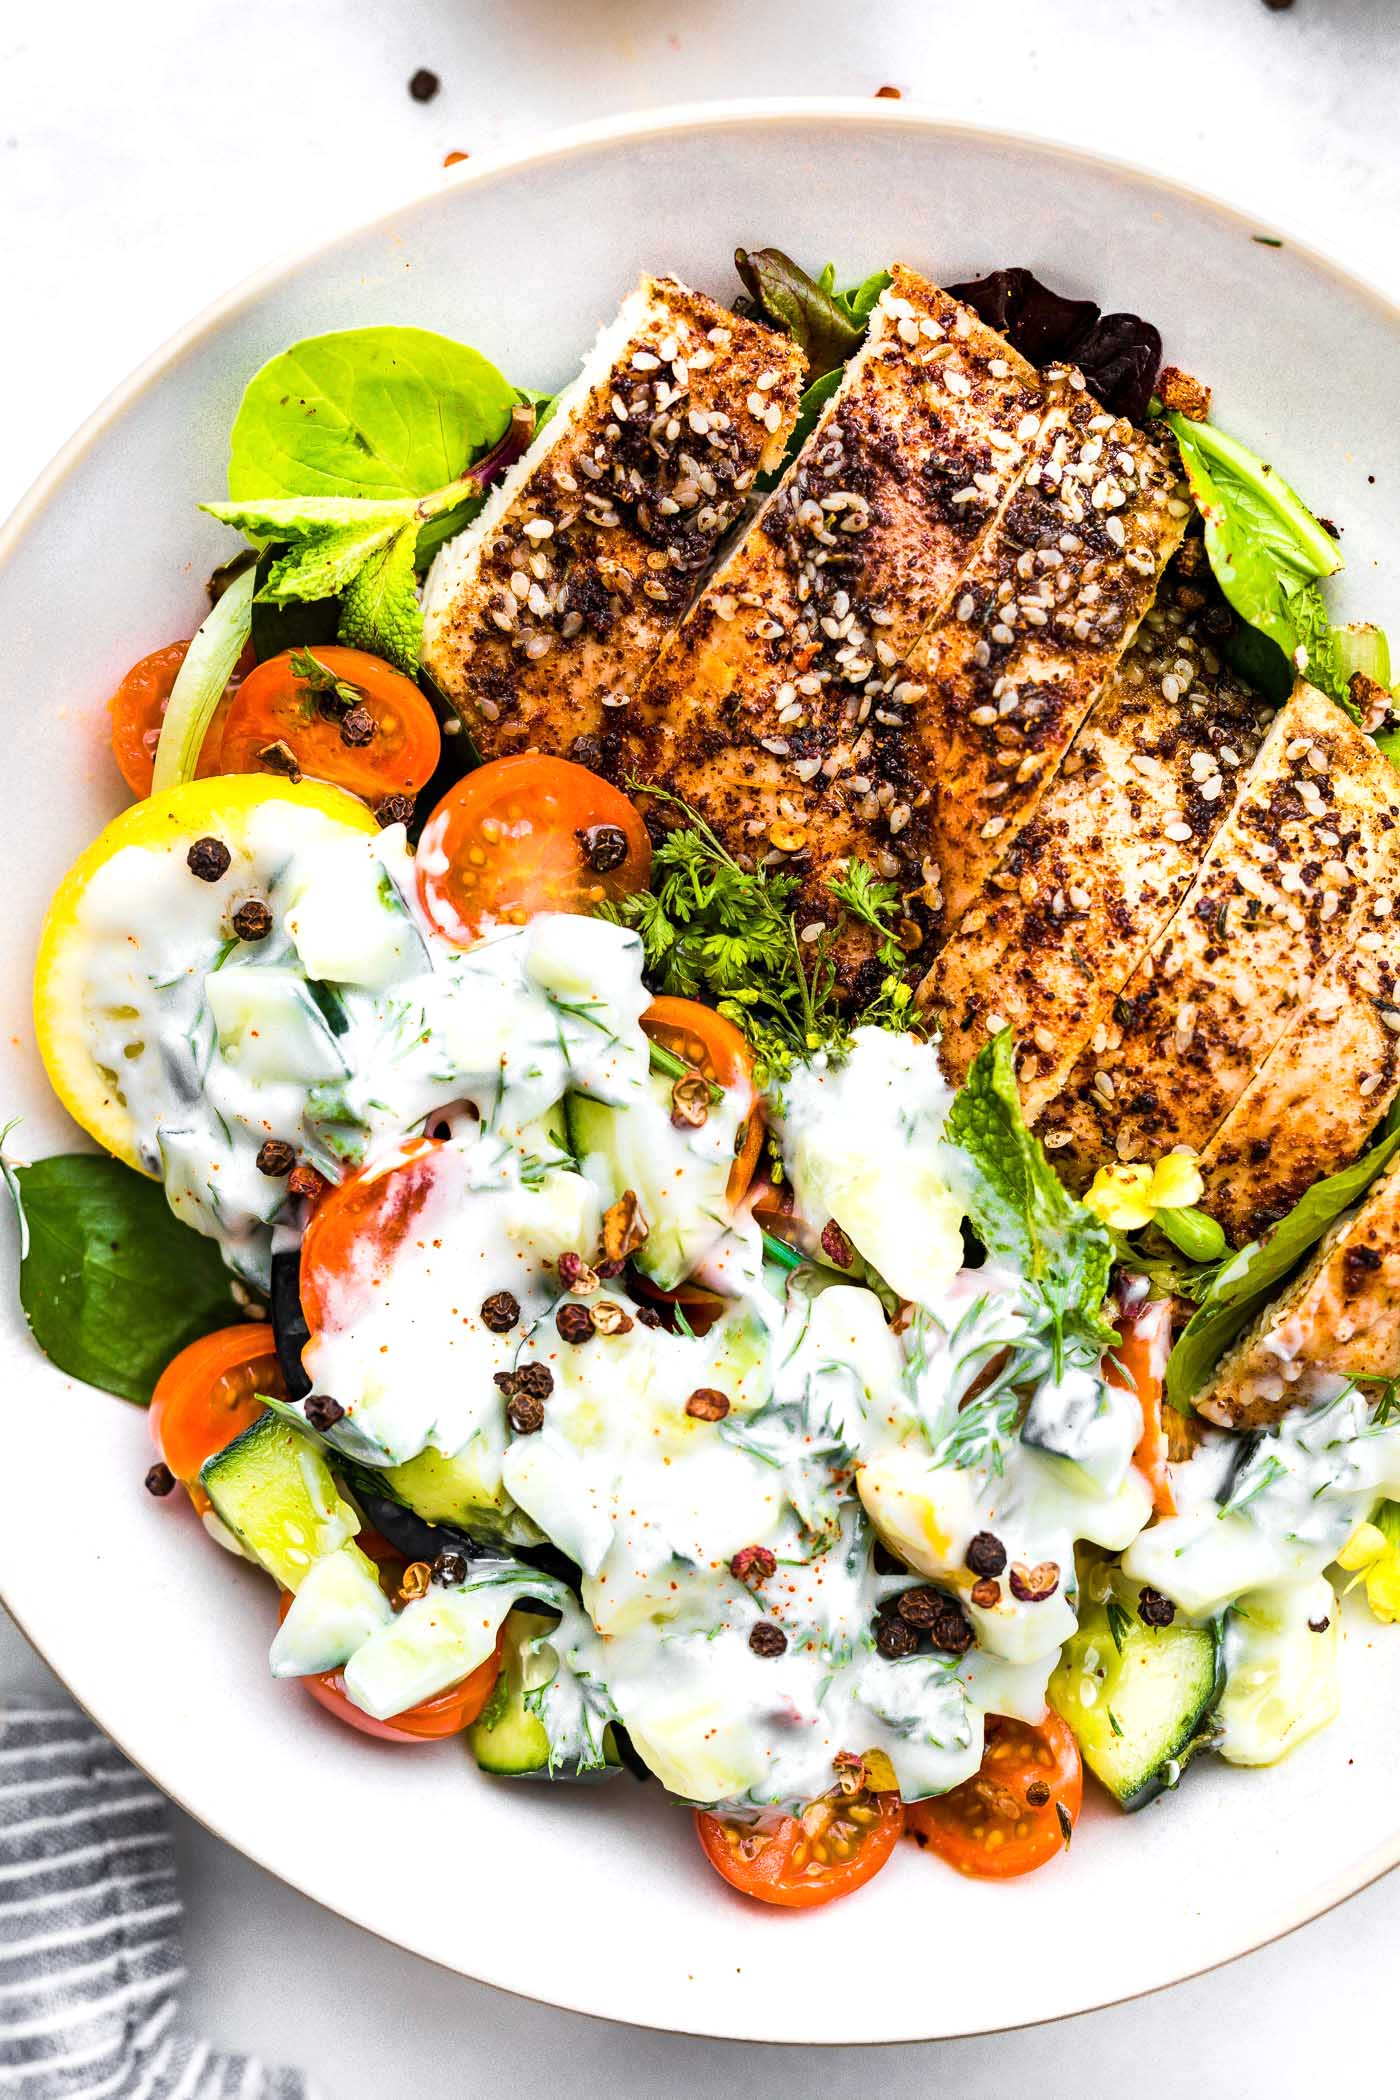 Paleo Meal Prep Recipe: Za'atar Chicken Bowls with Tomato and Cucumber Raita #paleo #mealprep #chicken #healthyrecipes